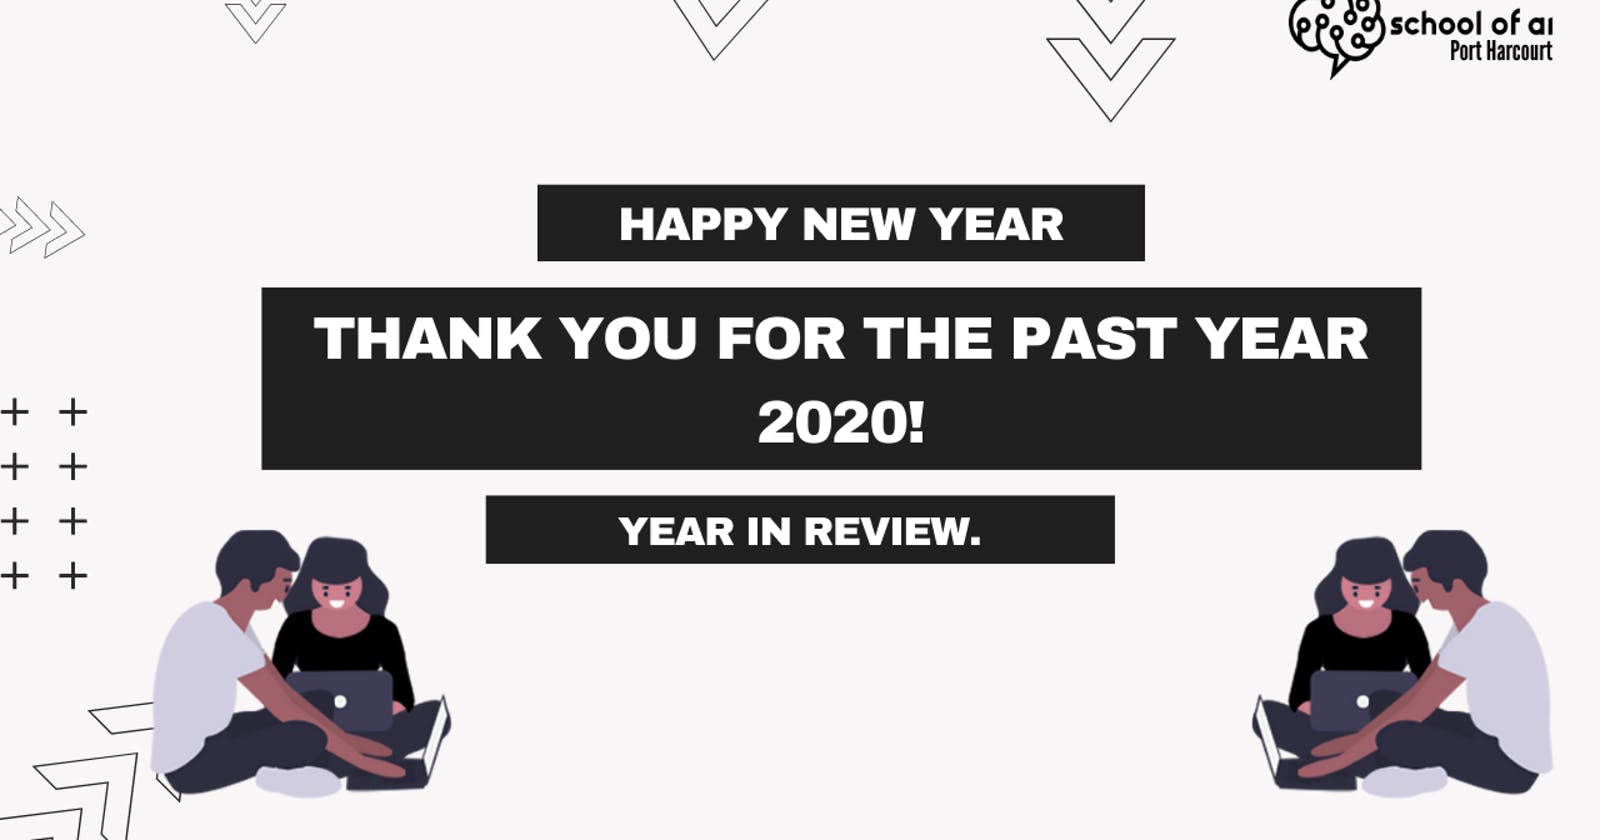 Port Harcourt School of AI's 2020; Year In Review.